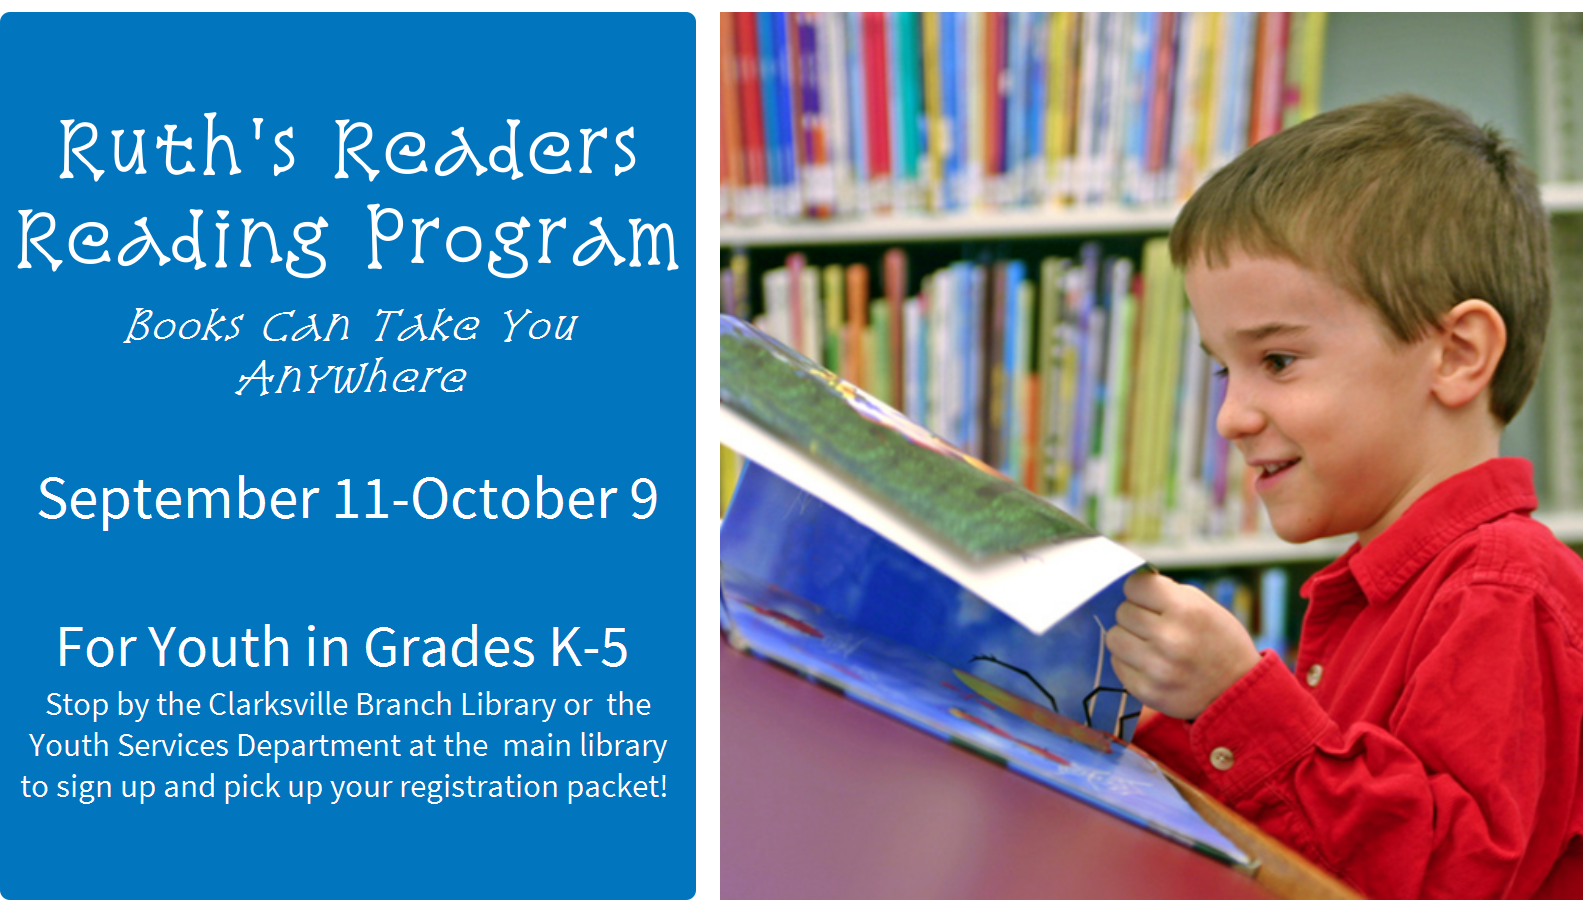 Ruths Readers Reading Program